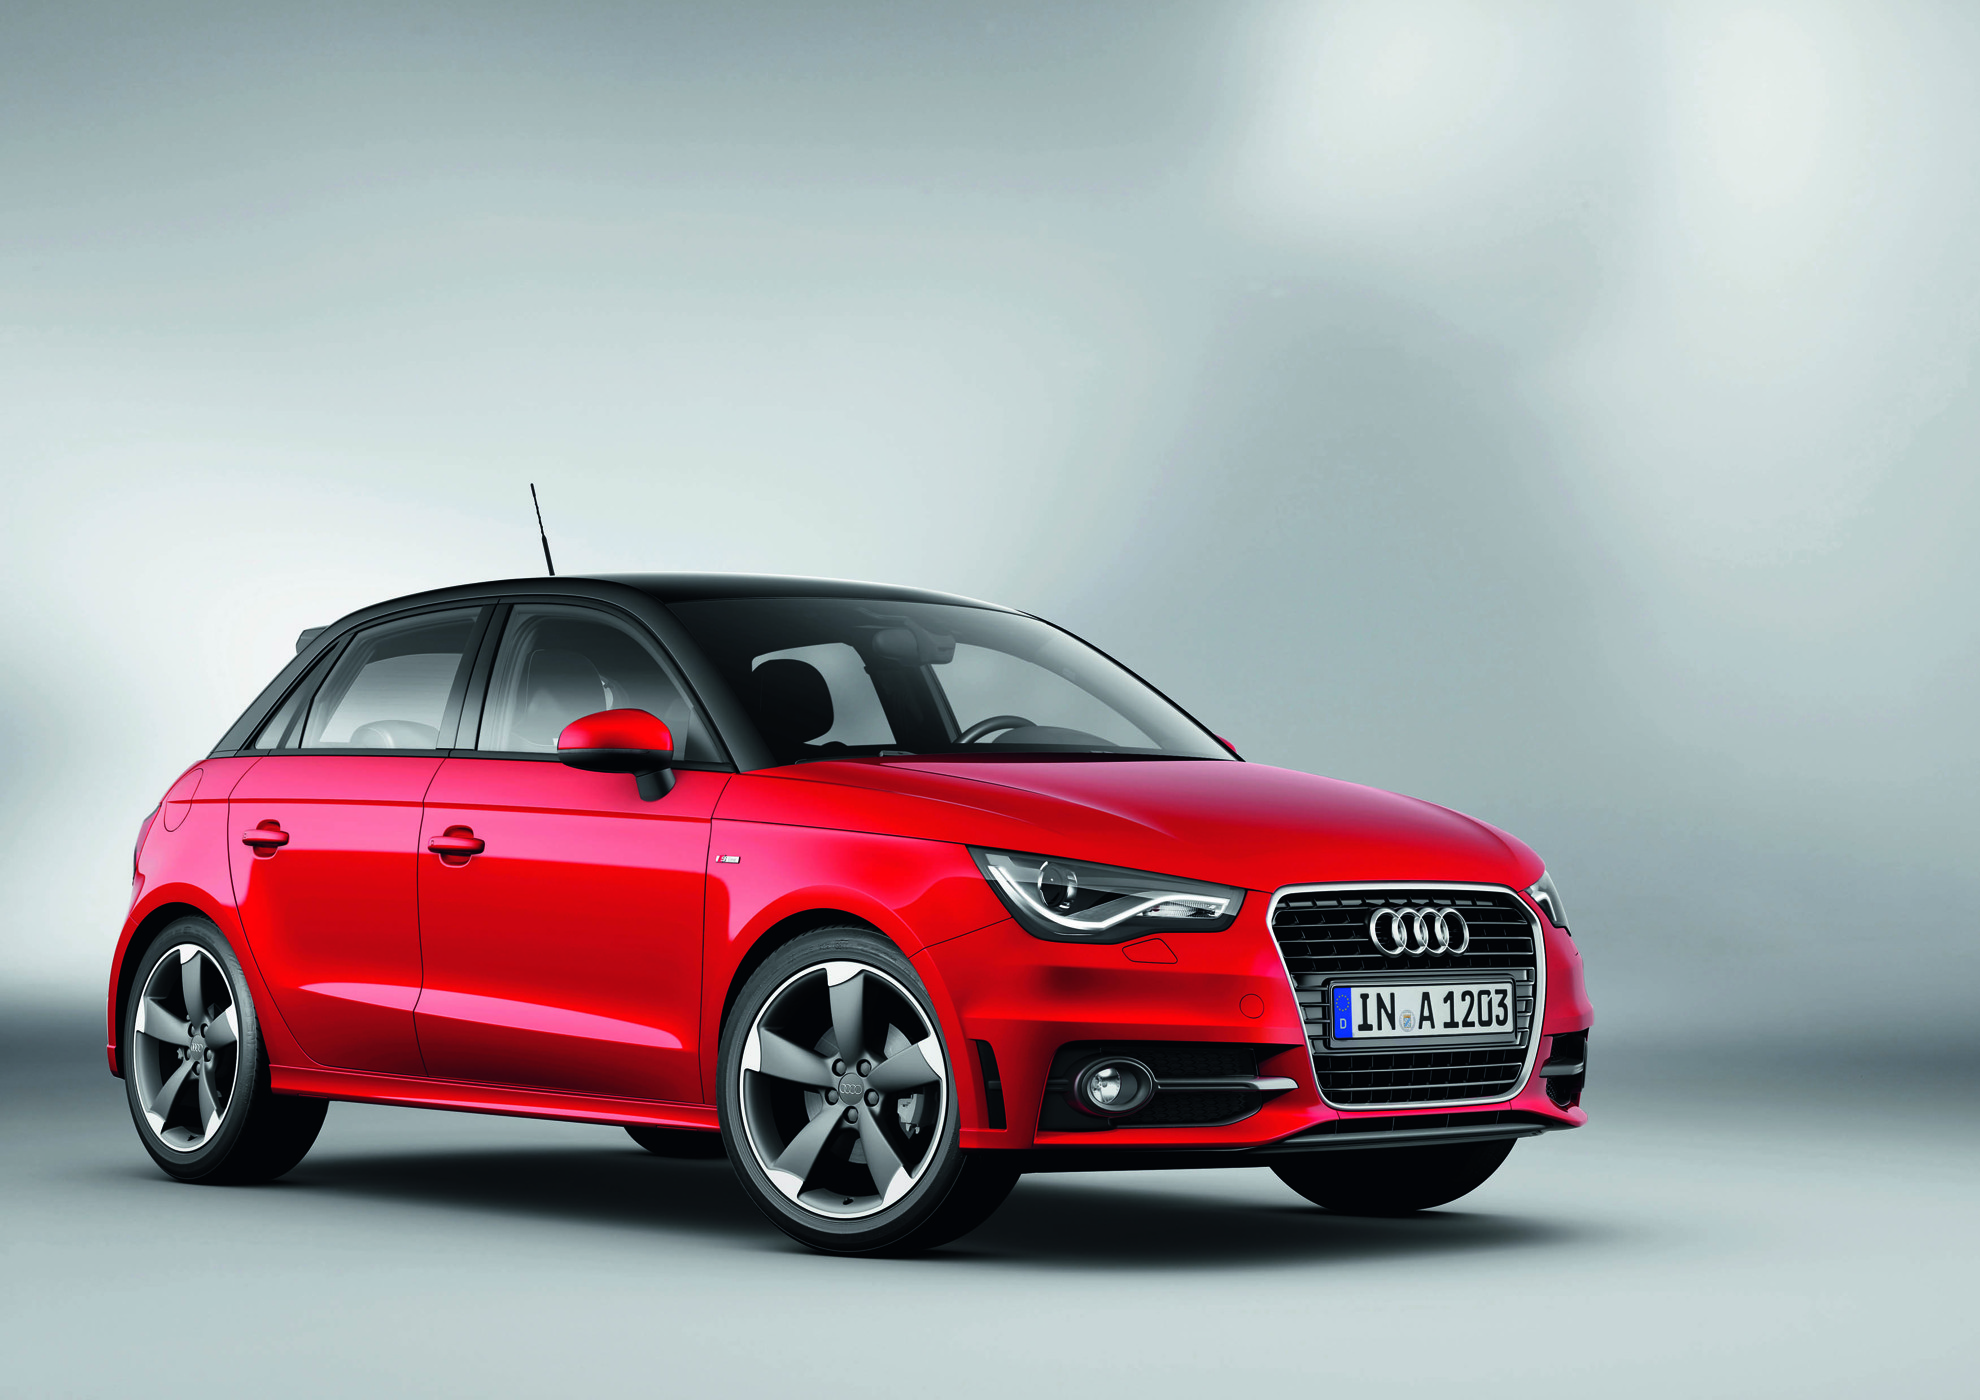 Best Cars of 2013